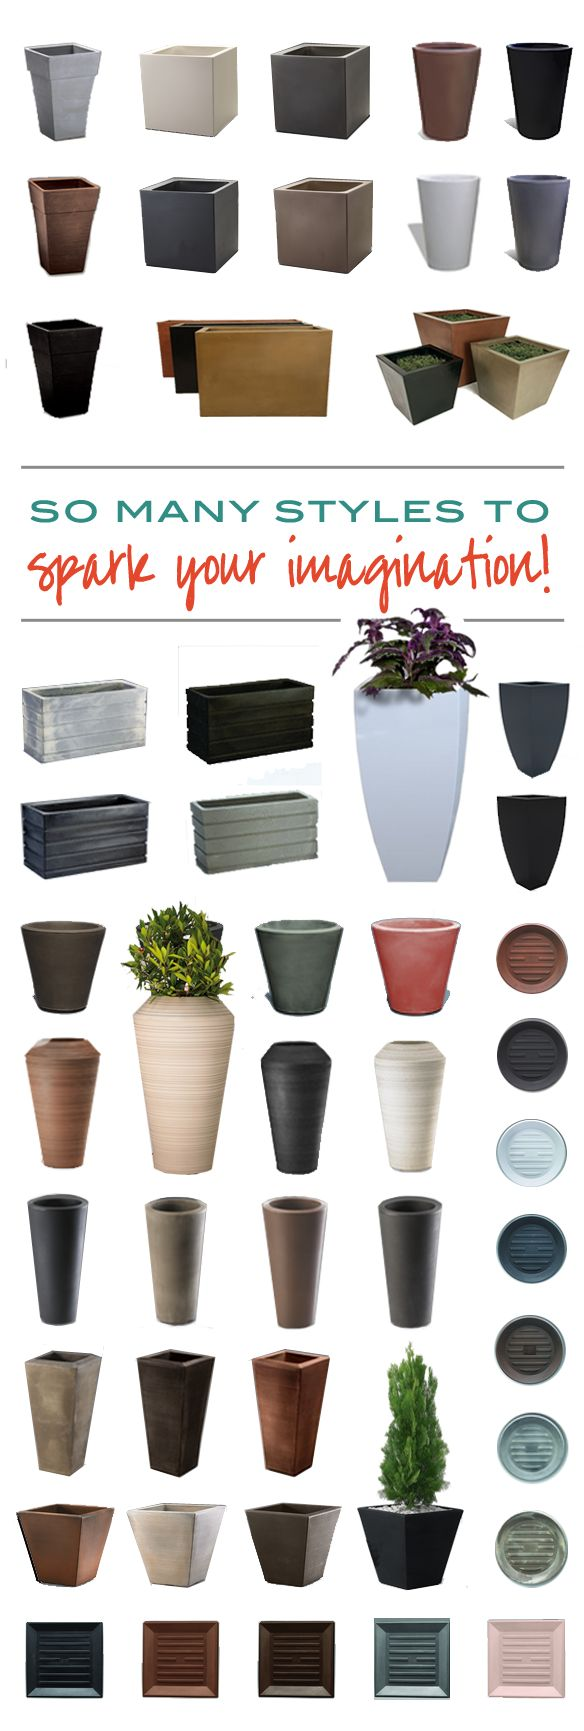 This holiday season discover the perfect planters and garden accessories to transform your indoor and outdoor space from boring to amazing. Find that perfect gift or design element at urbilis.com.